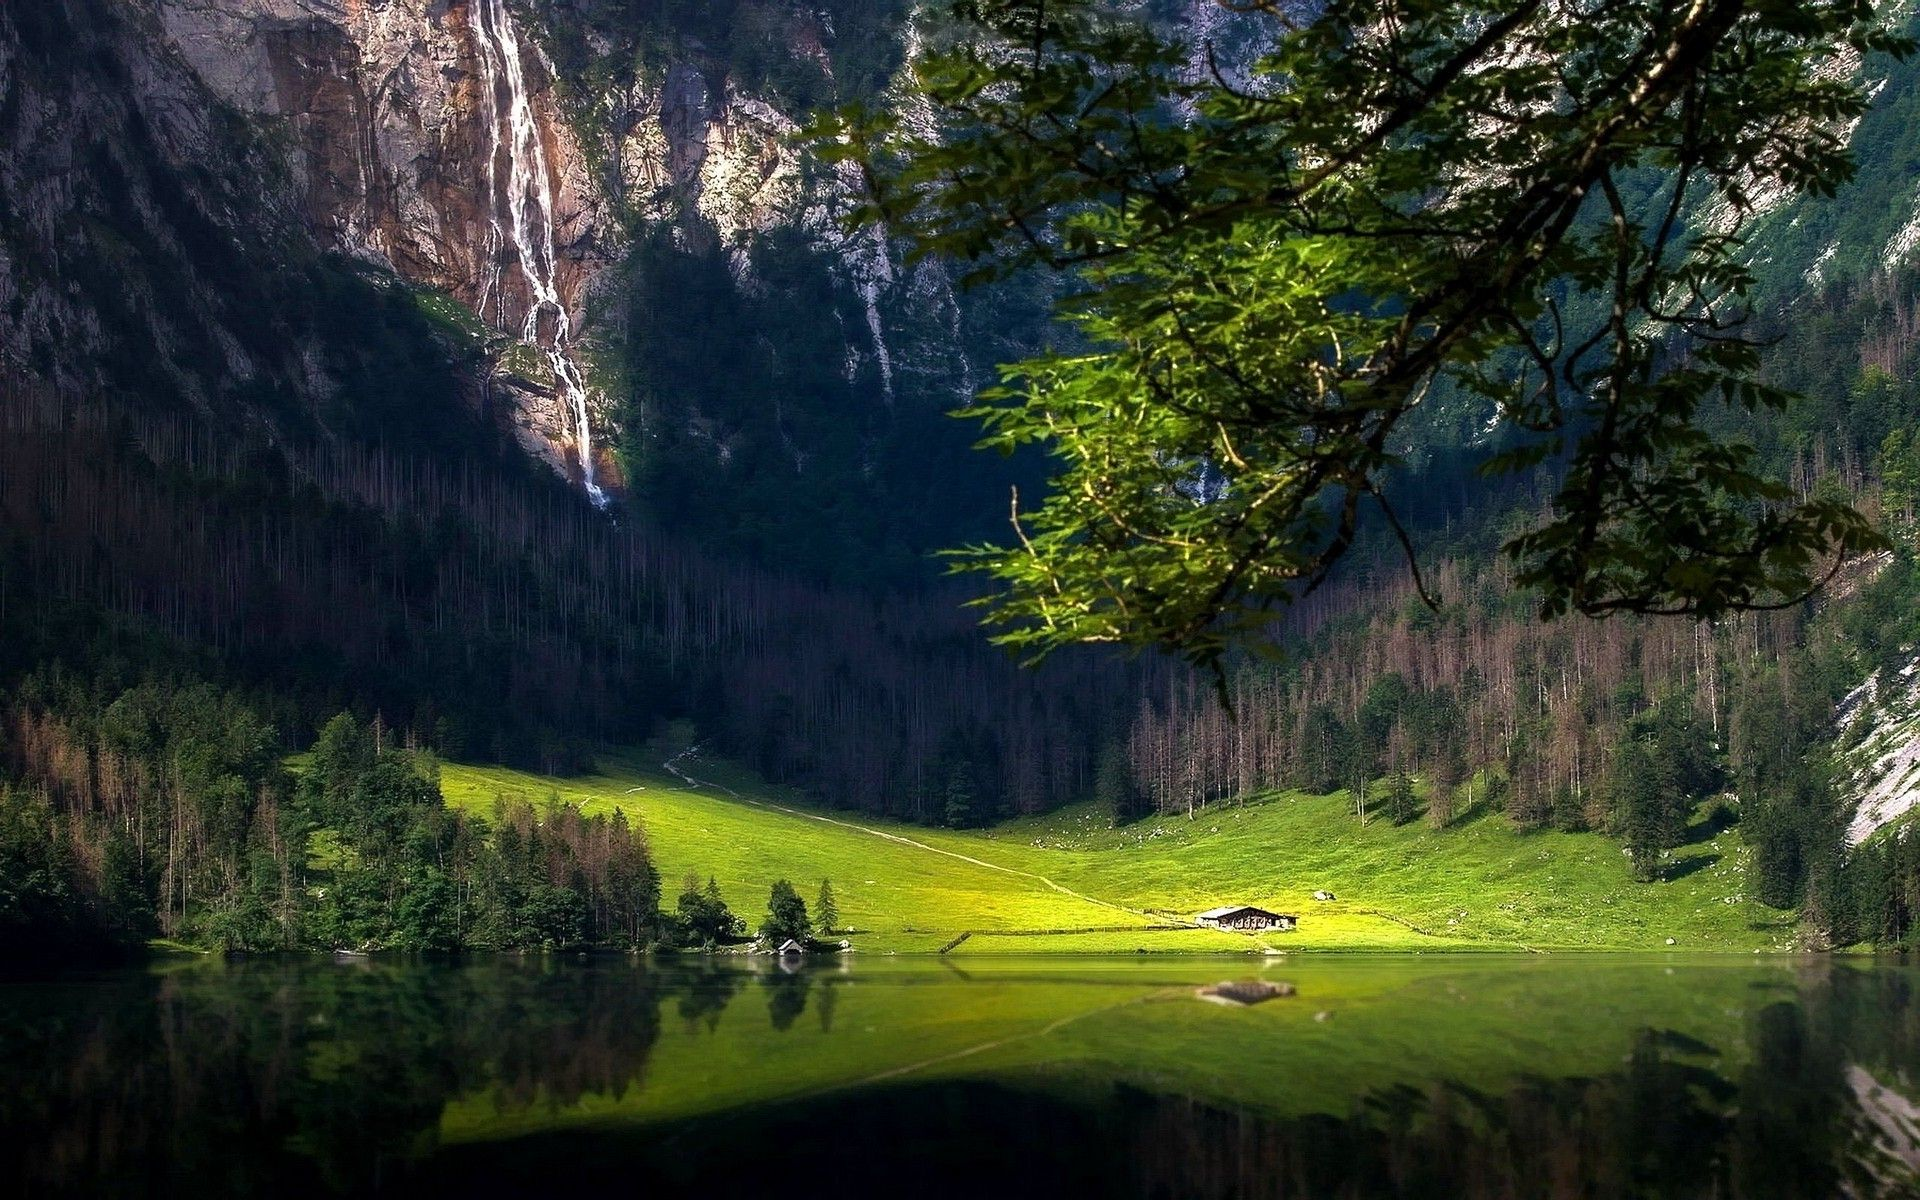 Landscape Nature Lake Mountain Forest Trees Grass Germany Cabin Reflection Waterfall Wallpaper And Background Landscape Nature Grass Field